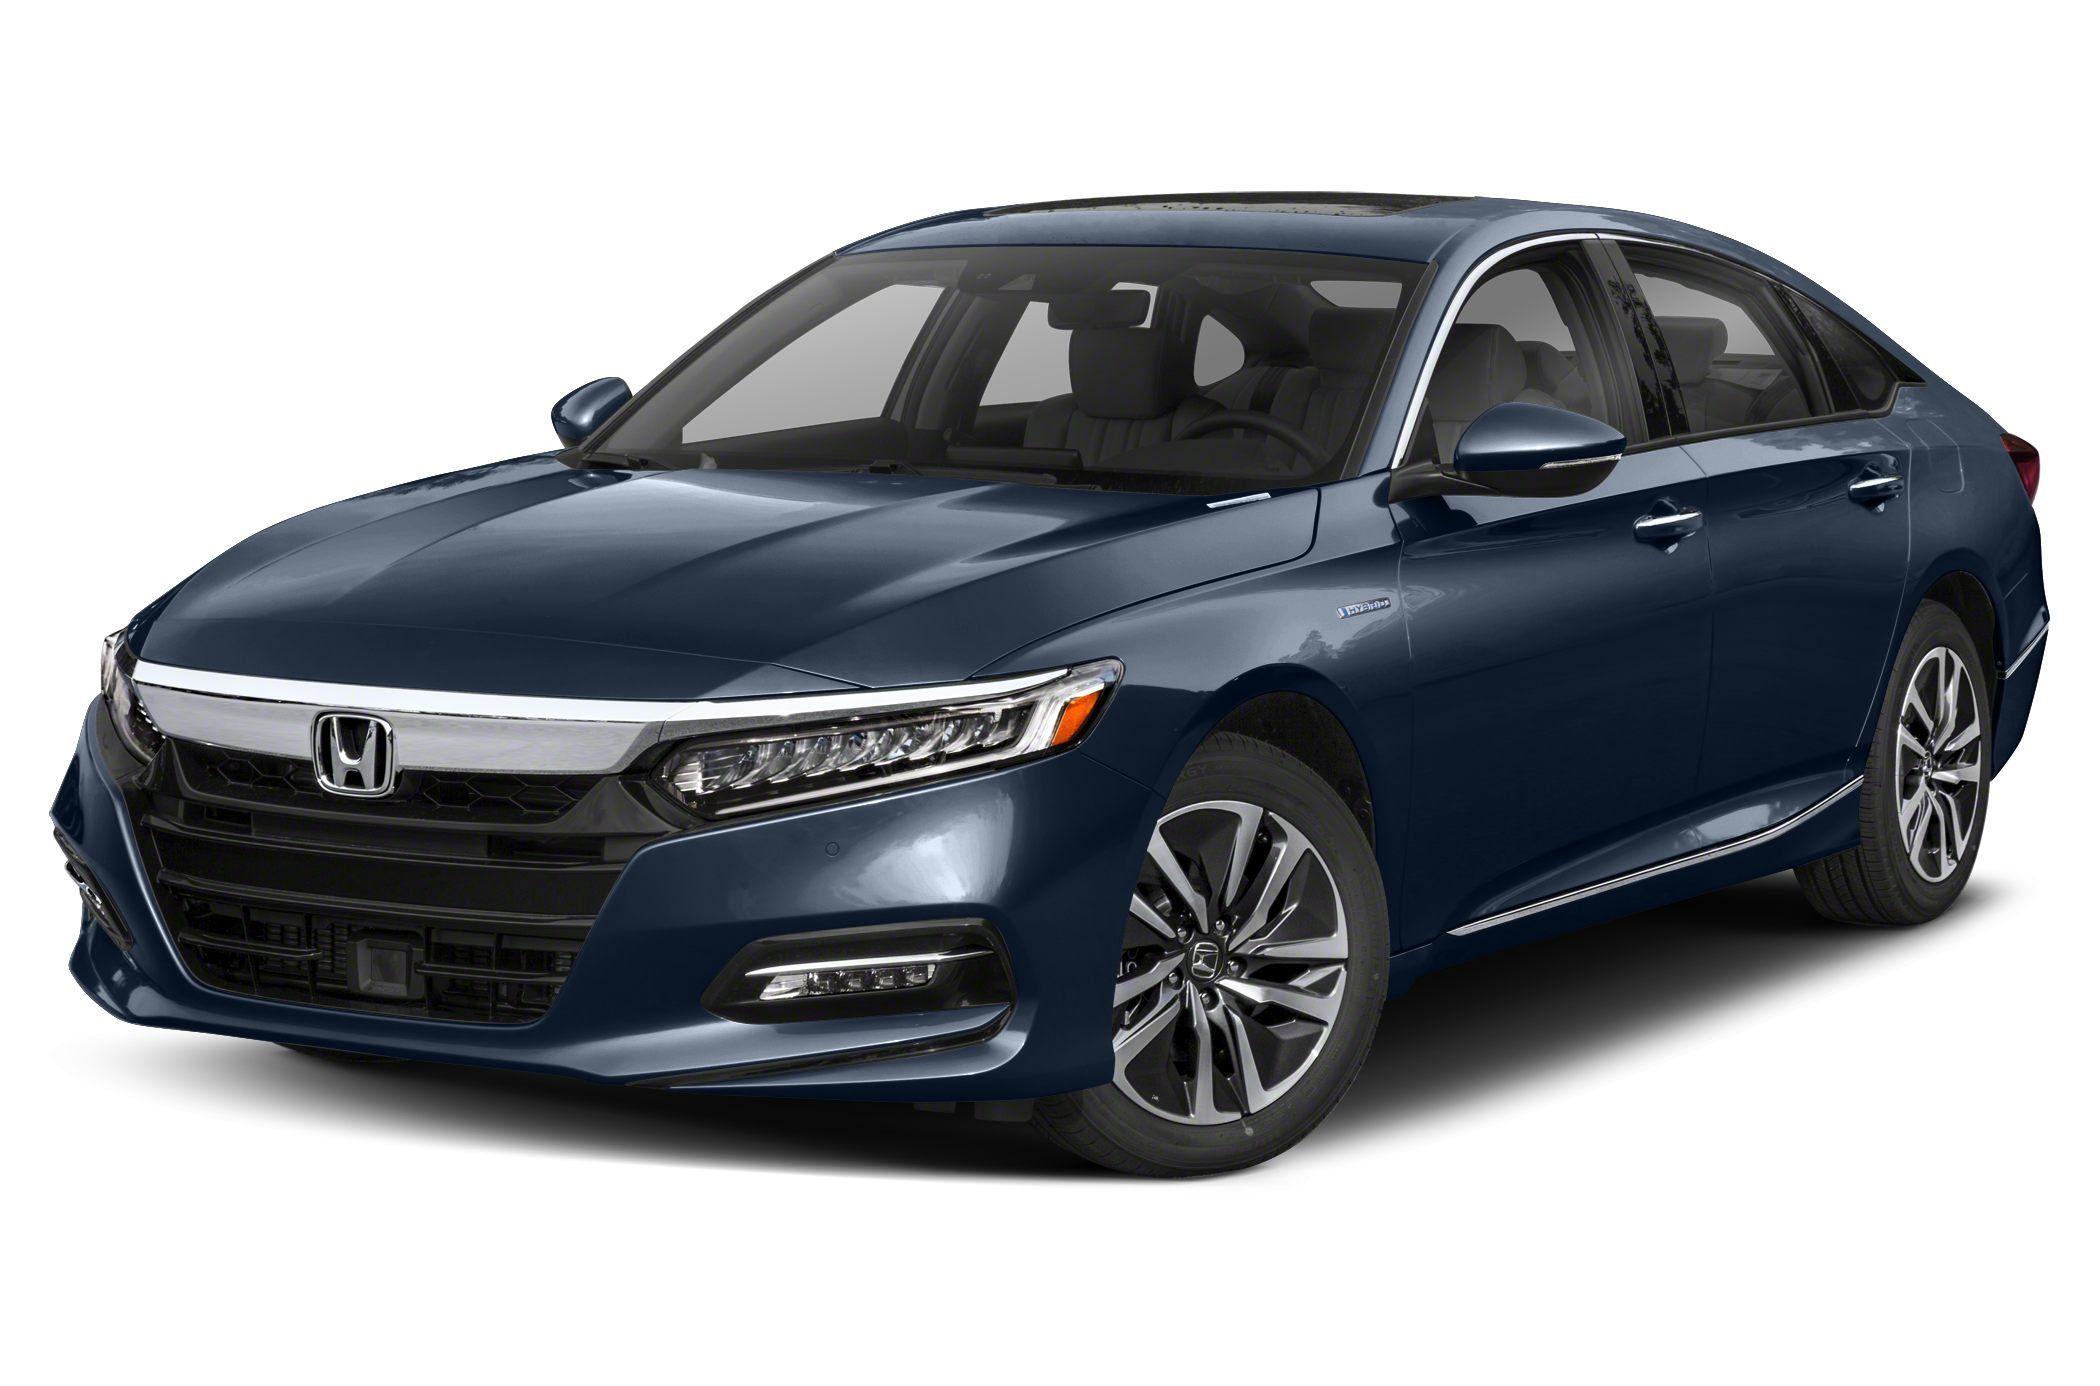 2020 Honda Accord Hybrid Price and Release Date in 2020